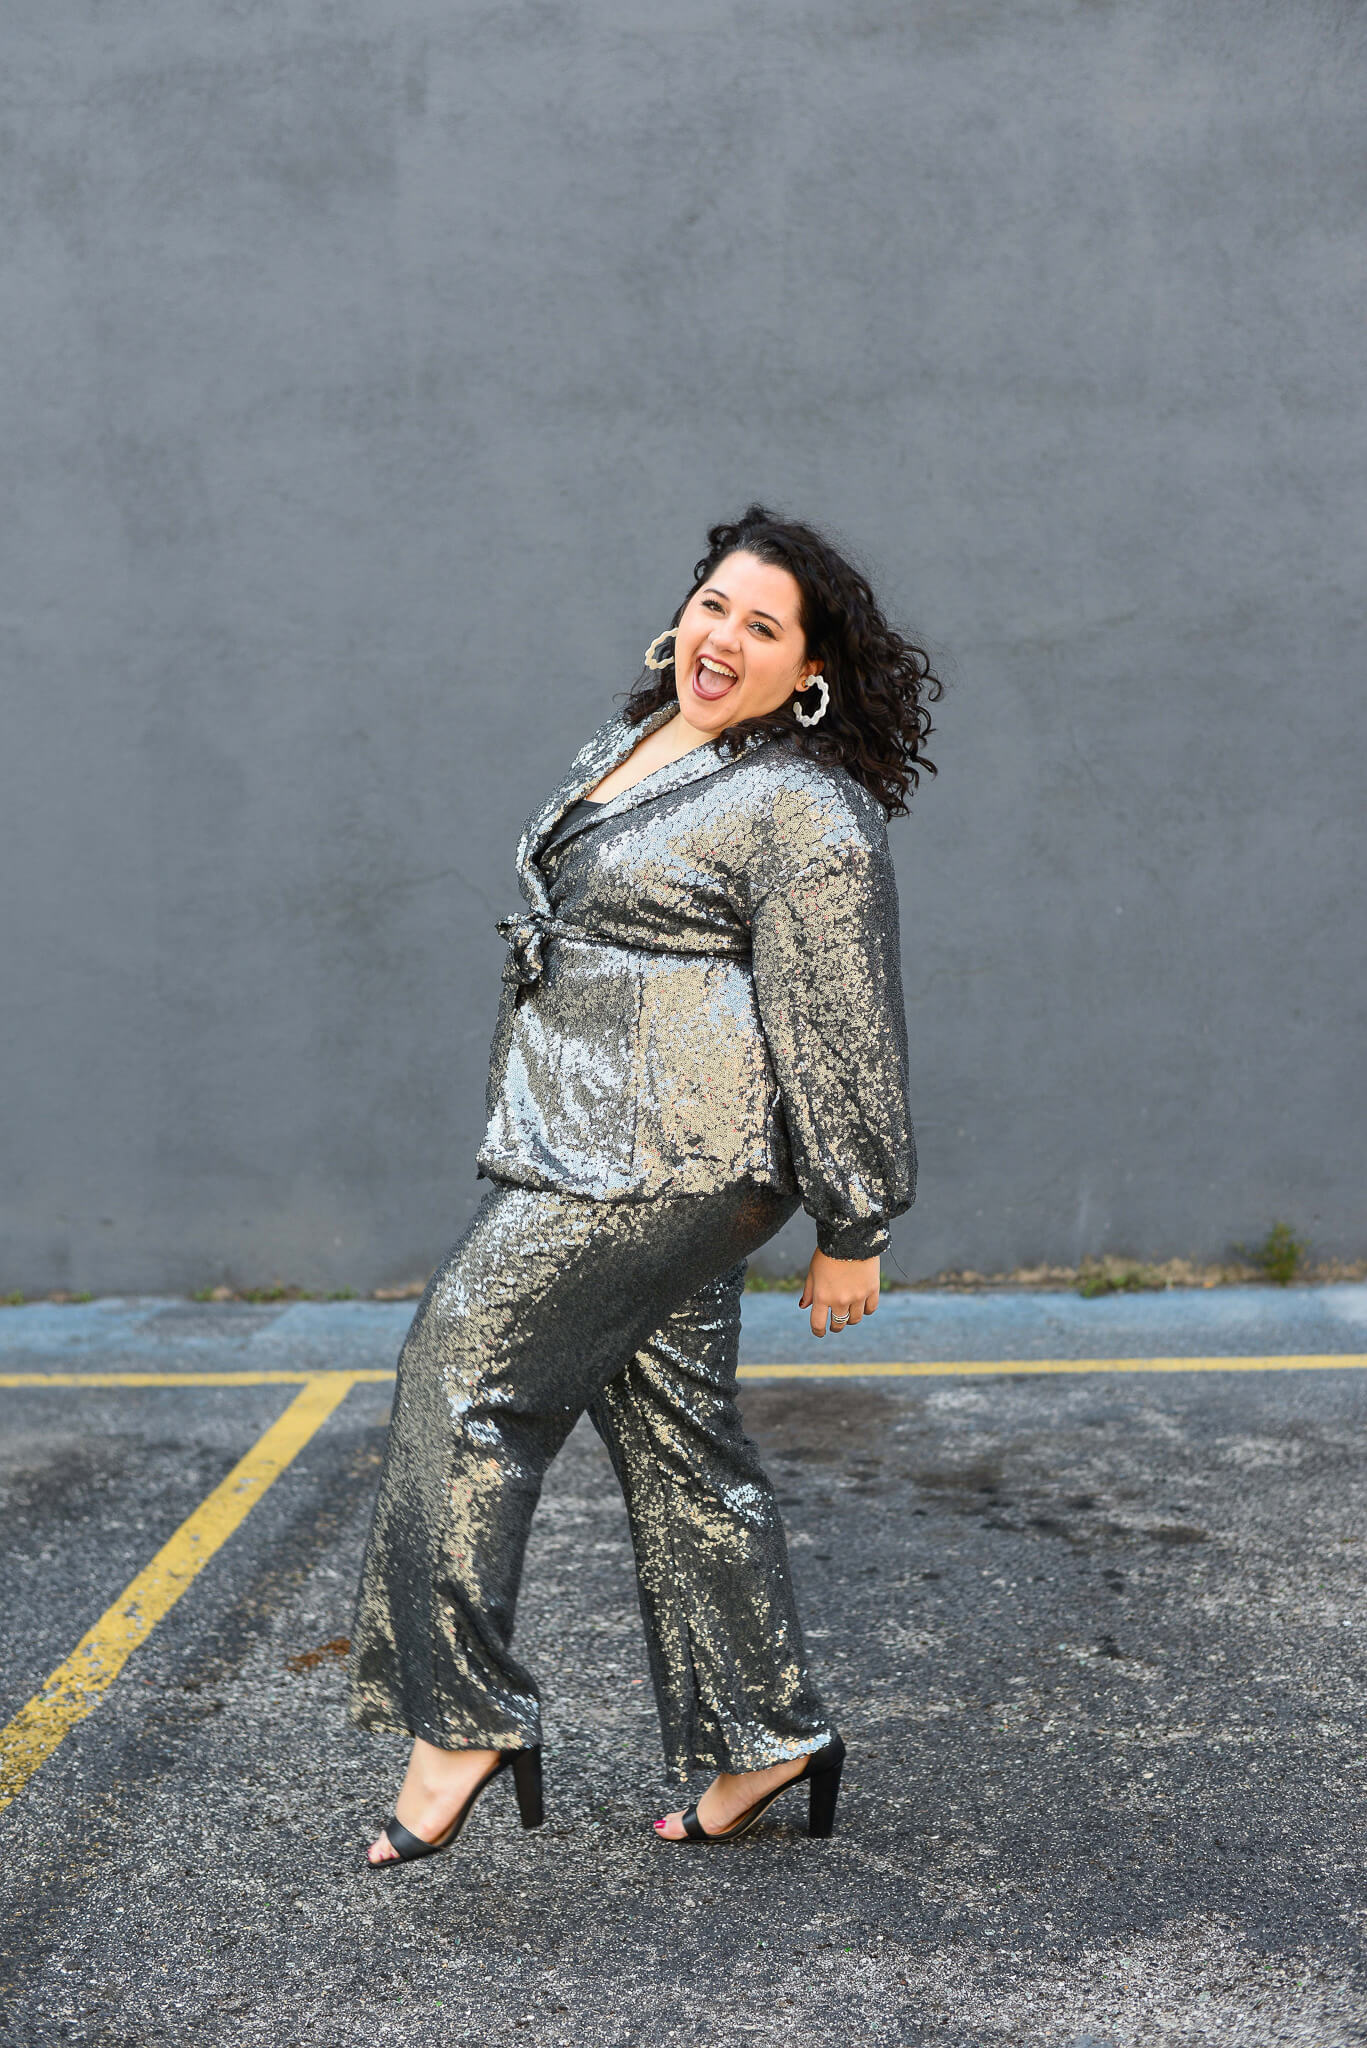 Kicking up my heels in a plus size sequin suit to ring in the new year